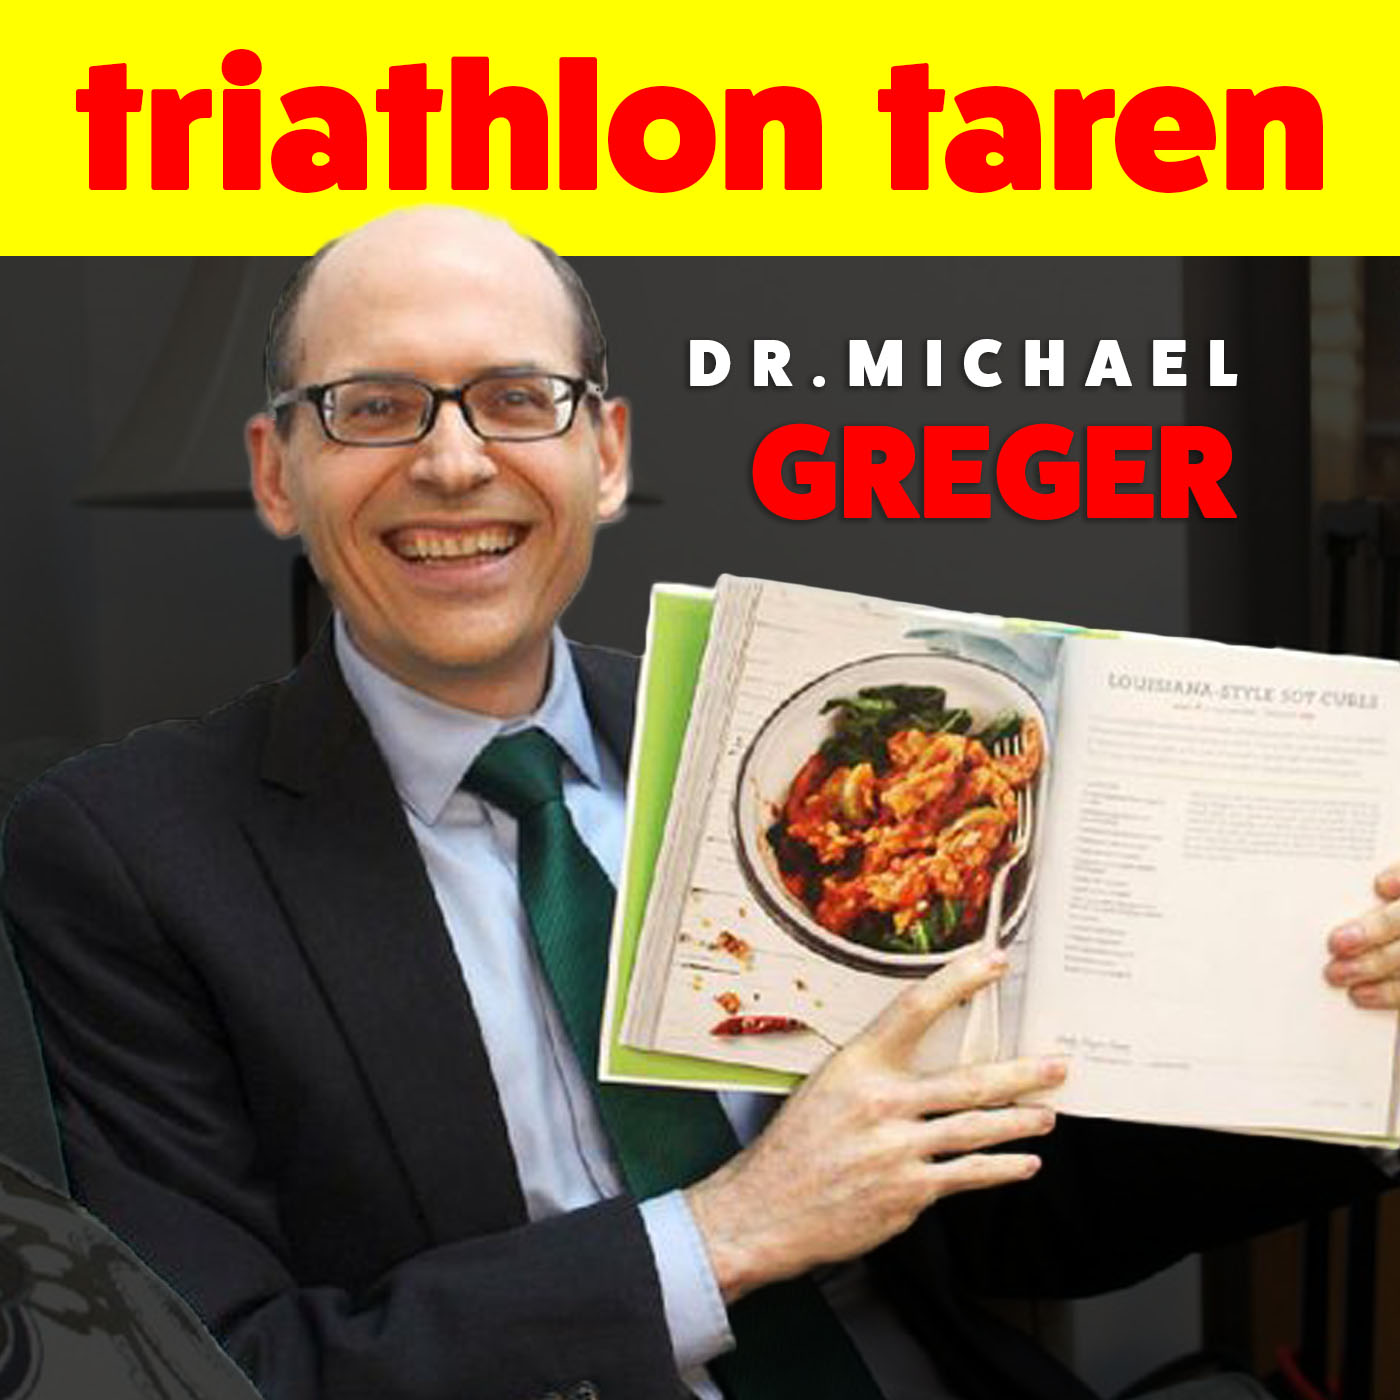 Dr. Michael Greger MD on How Not to Die